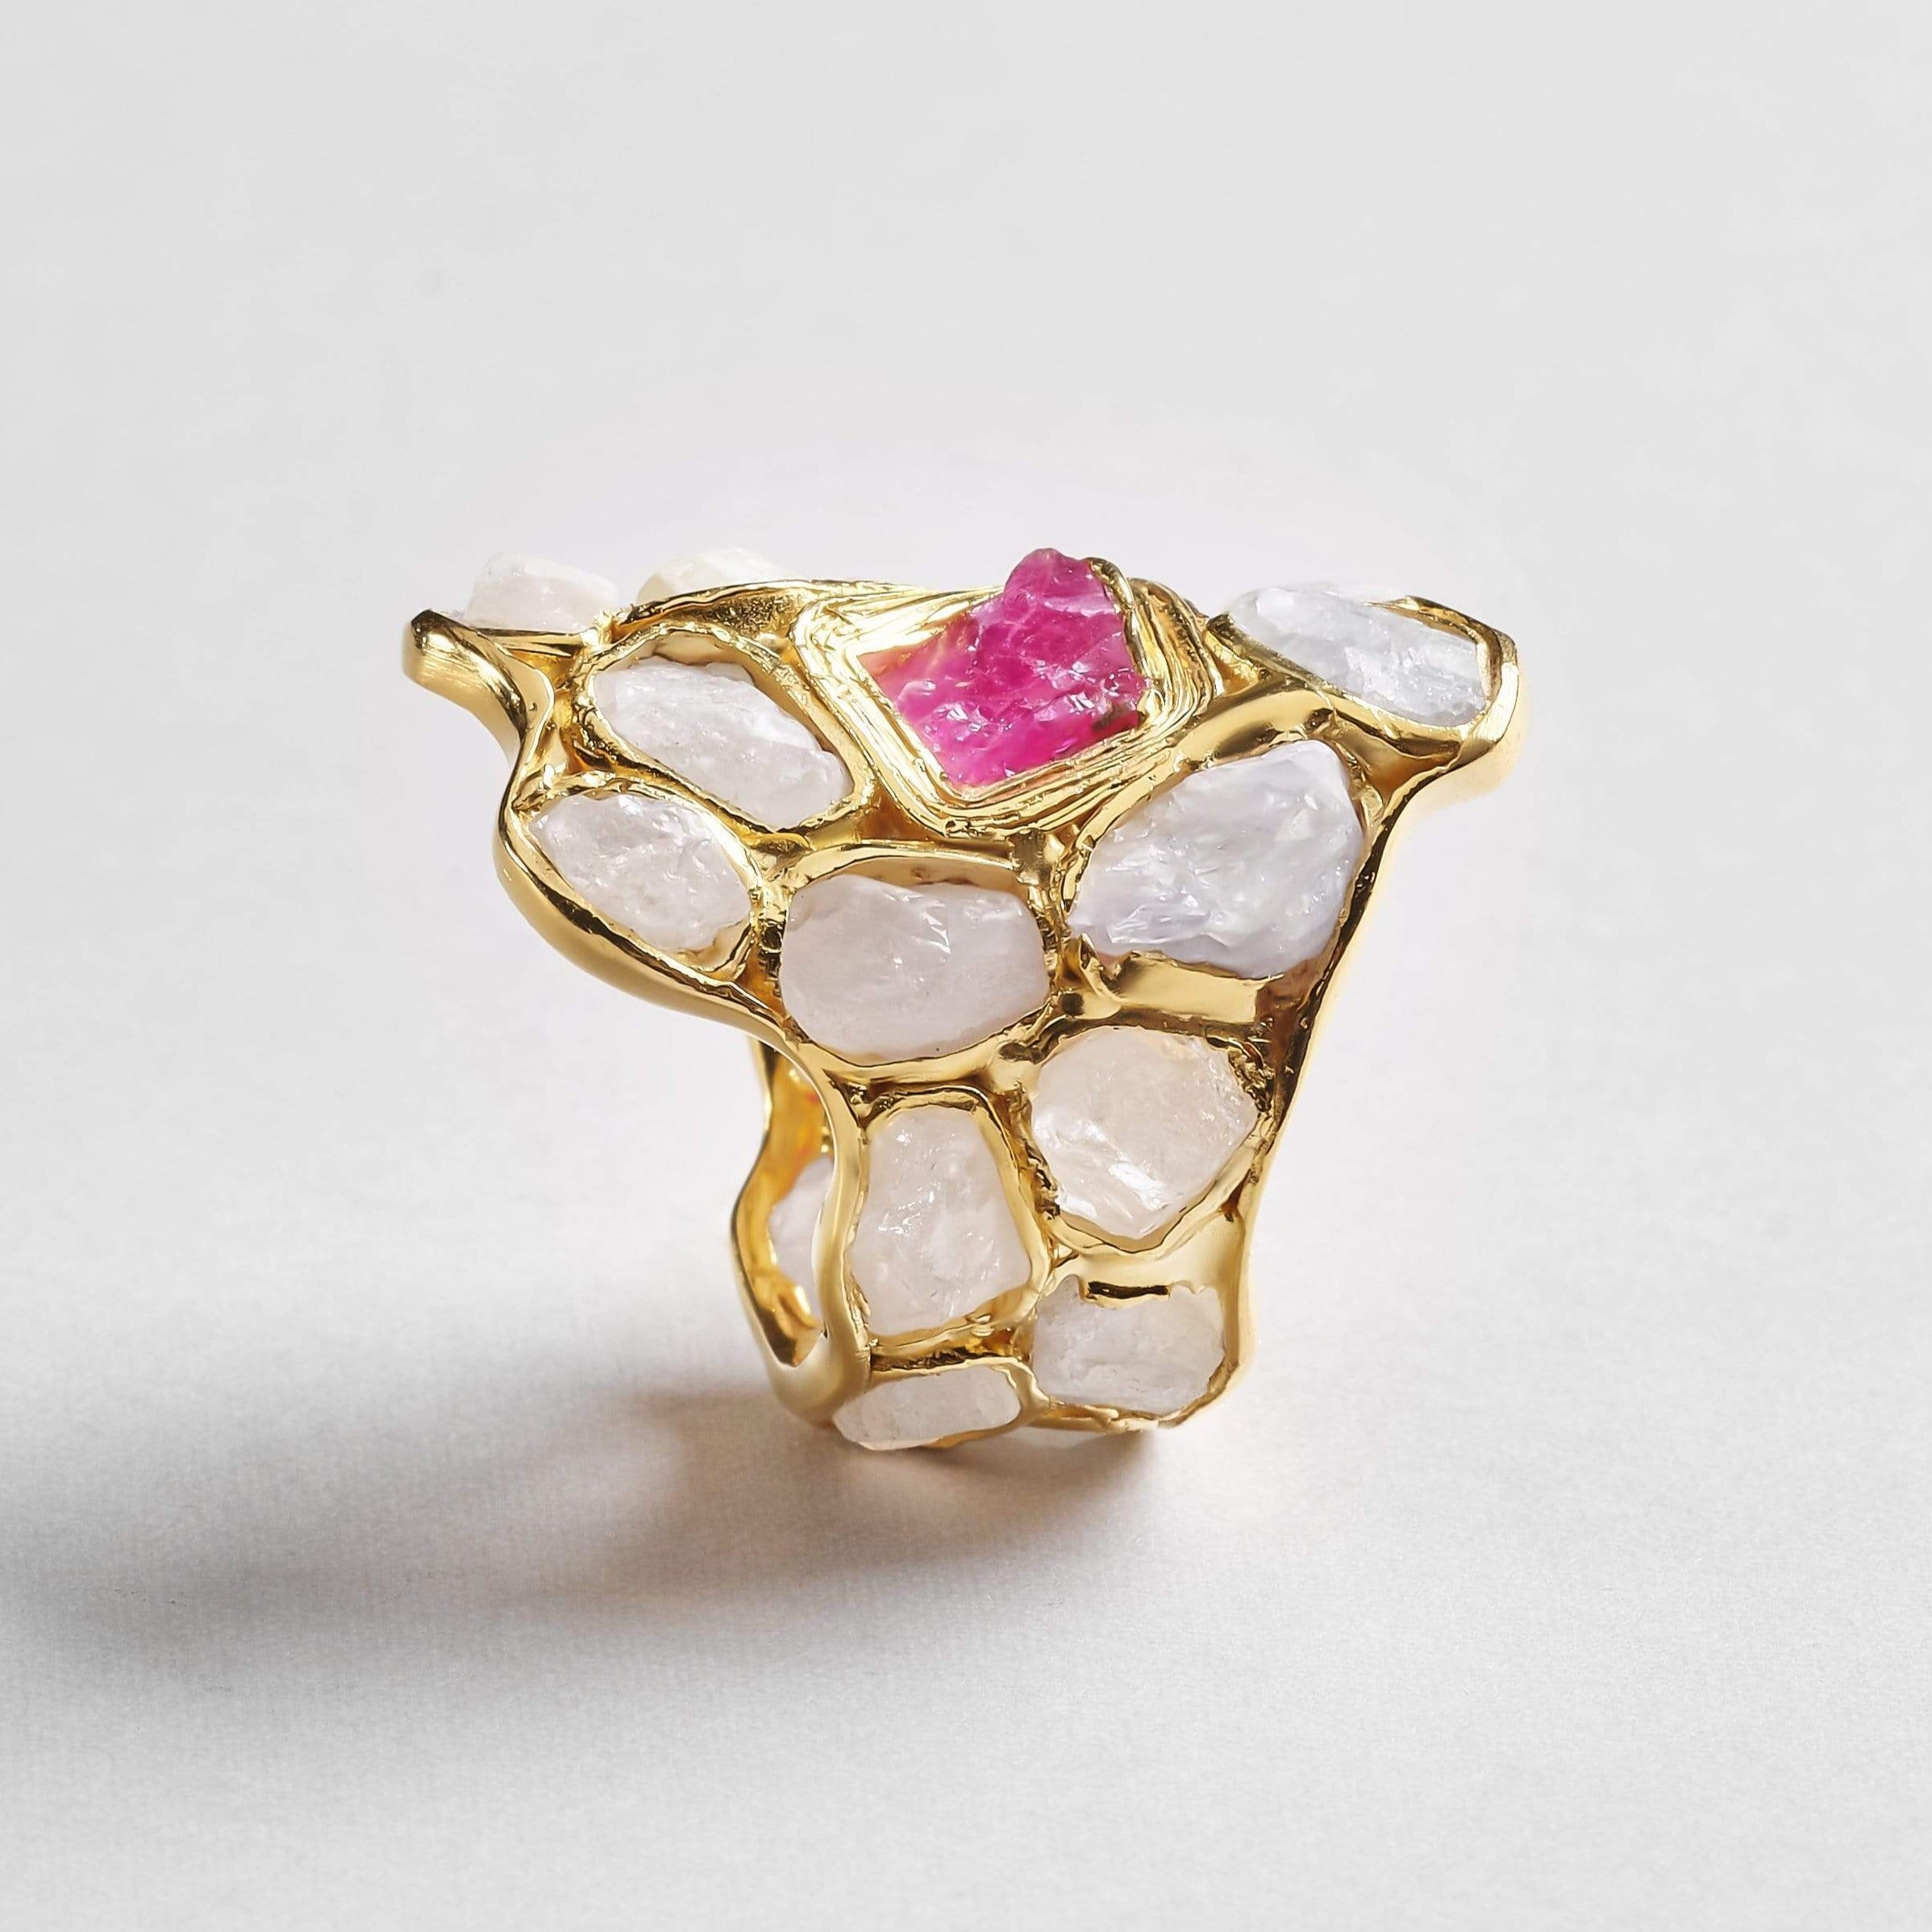 Mellusina Ring, Gold, Handmade, Ruby, Sapphire, spo-disabled, StoneColor:PastelColor, StoneColor:PinkRuby, Style:Everyday, Type:StainedGlass Ring